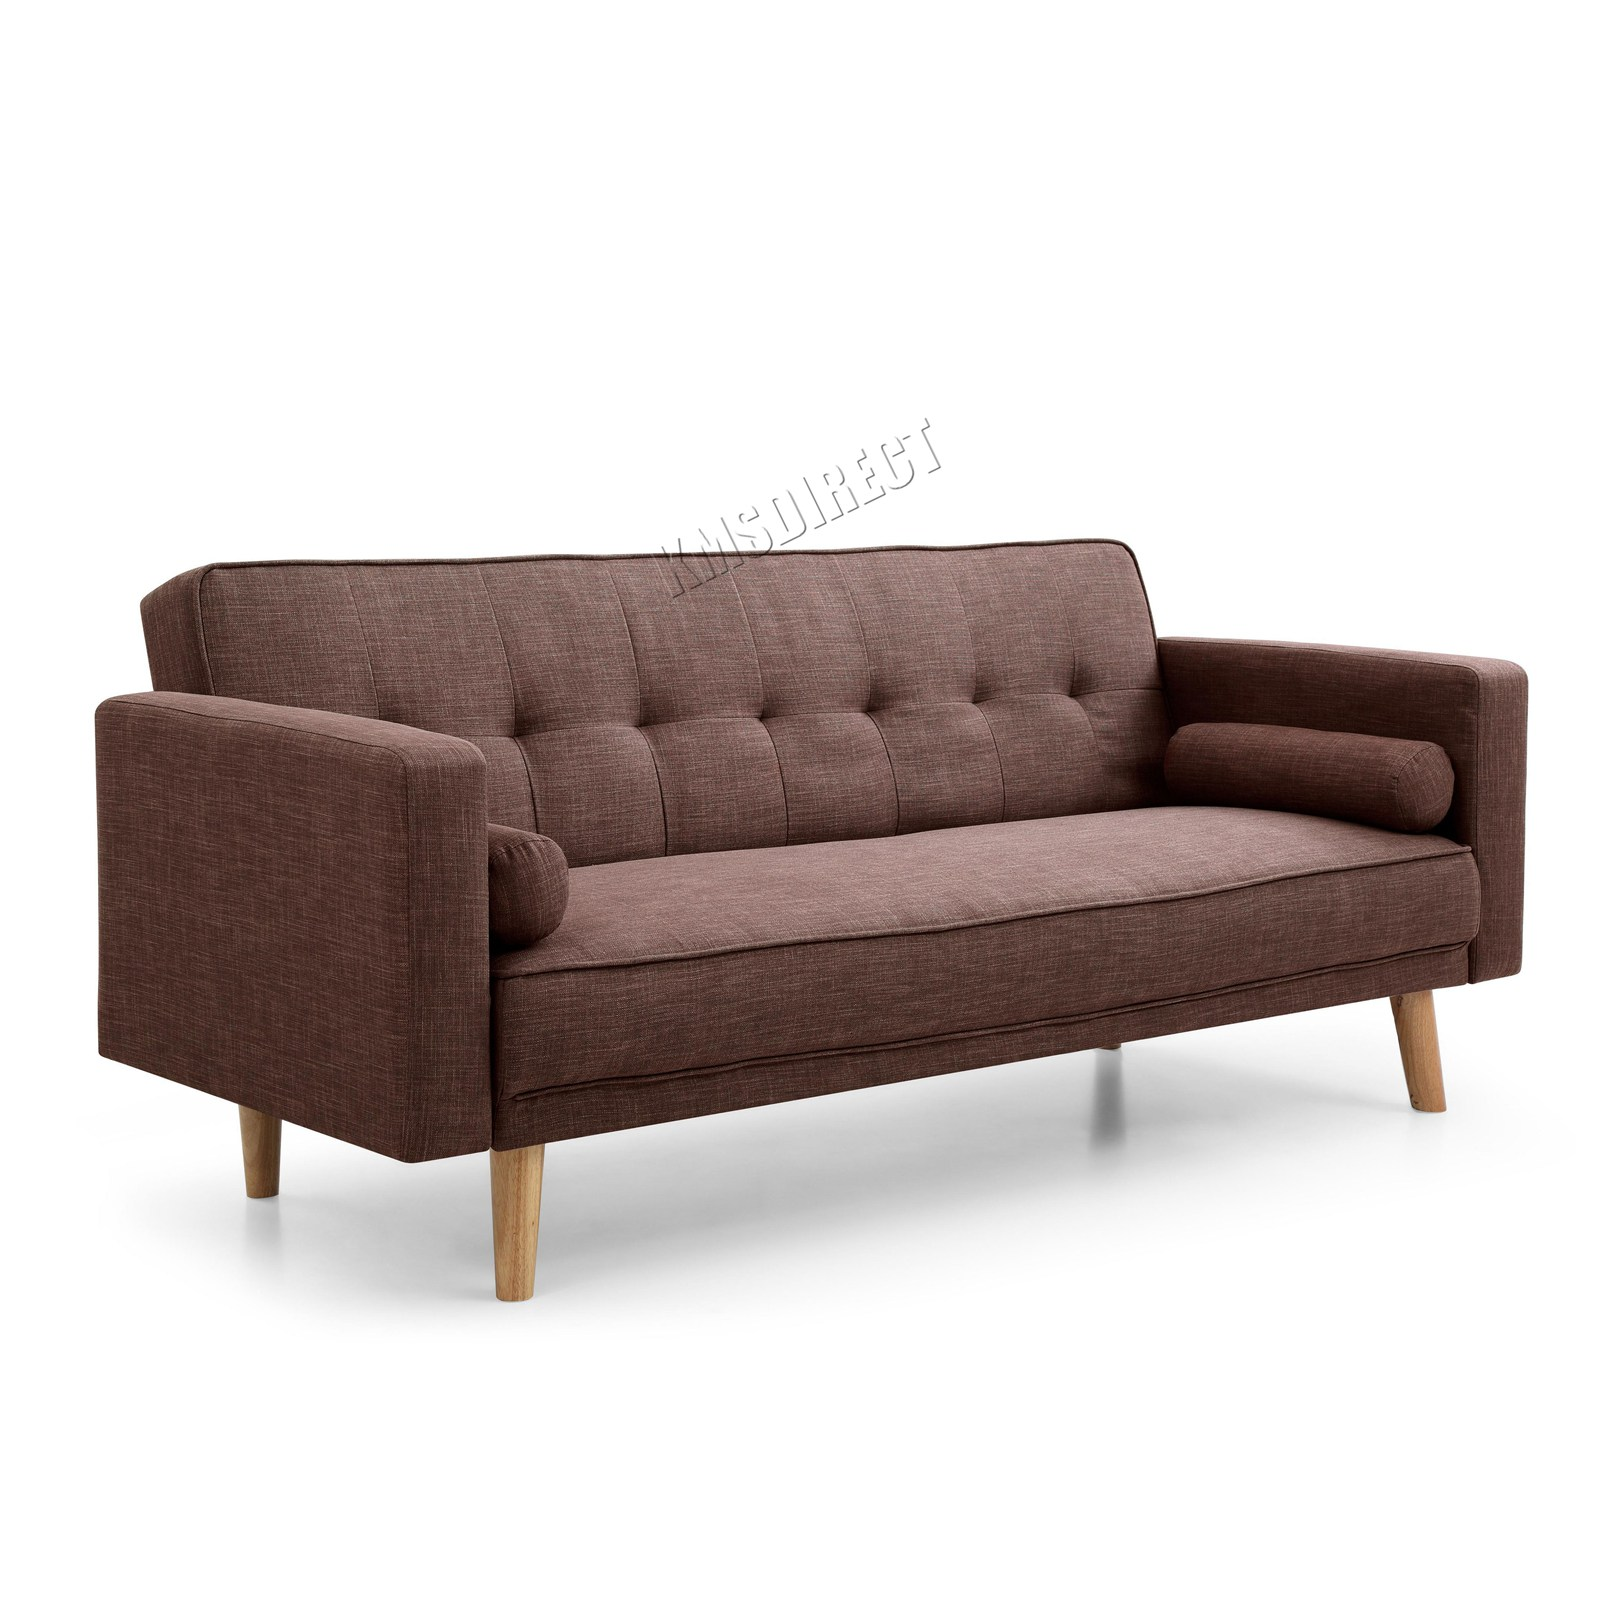 WestWood-Fabric-Sofa-Bed-3-Seater-Couch-Luxury-Modern-Home-Furniture-FSB04-New thumbnail 24